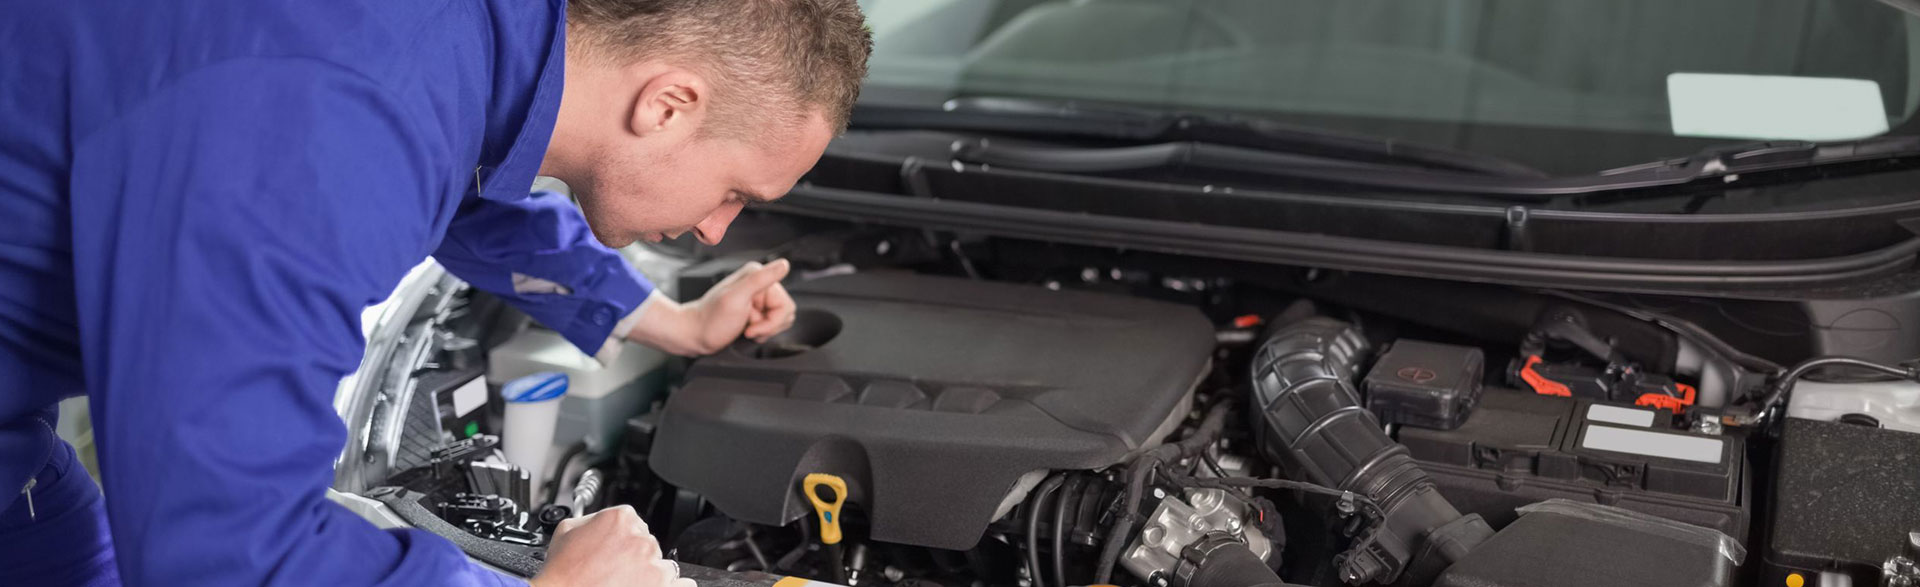 about-banner-john-smith-auto-service